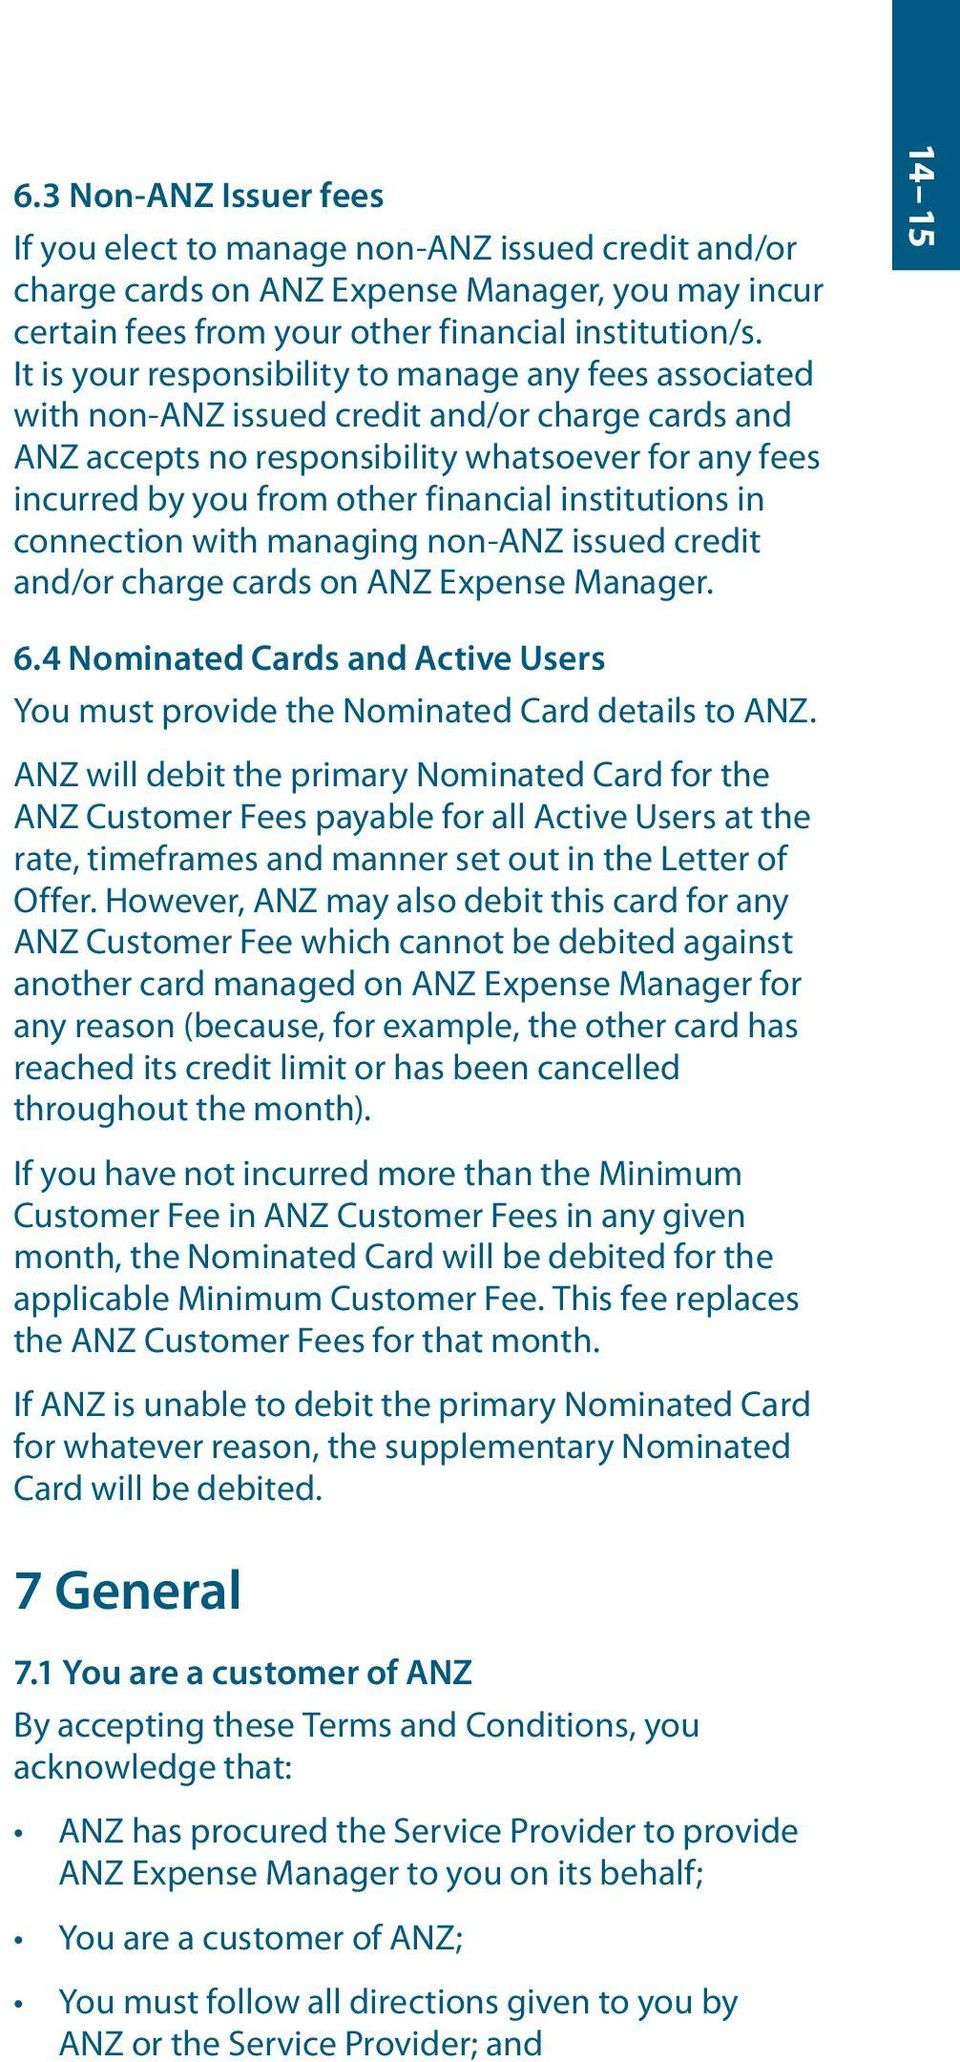 institutions in connection with managing non-anz issued credit and/or charge cards on ANZ Expense Manager. 14 15 6.